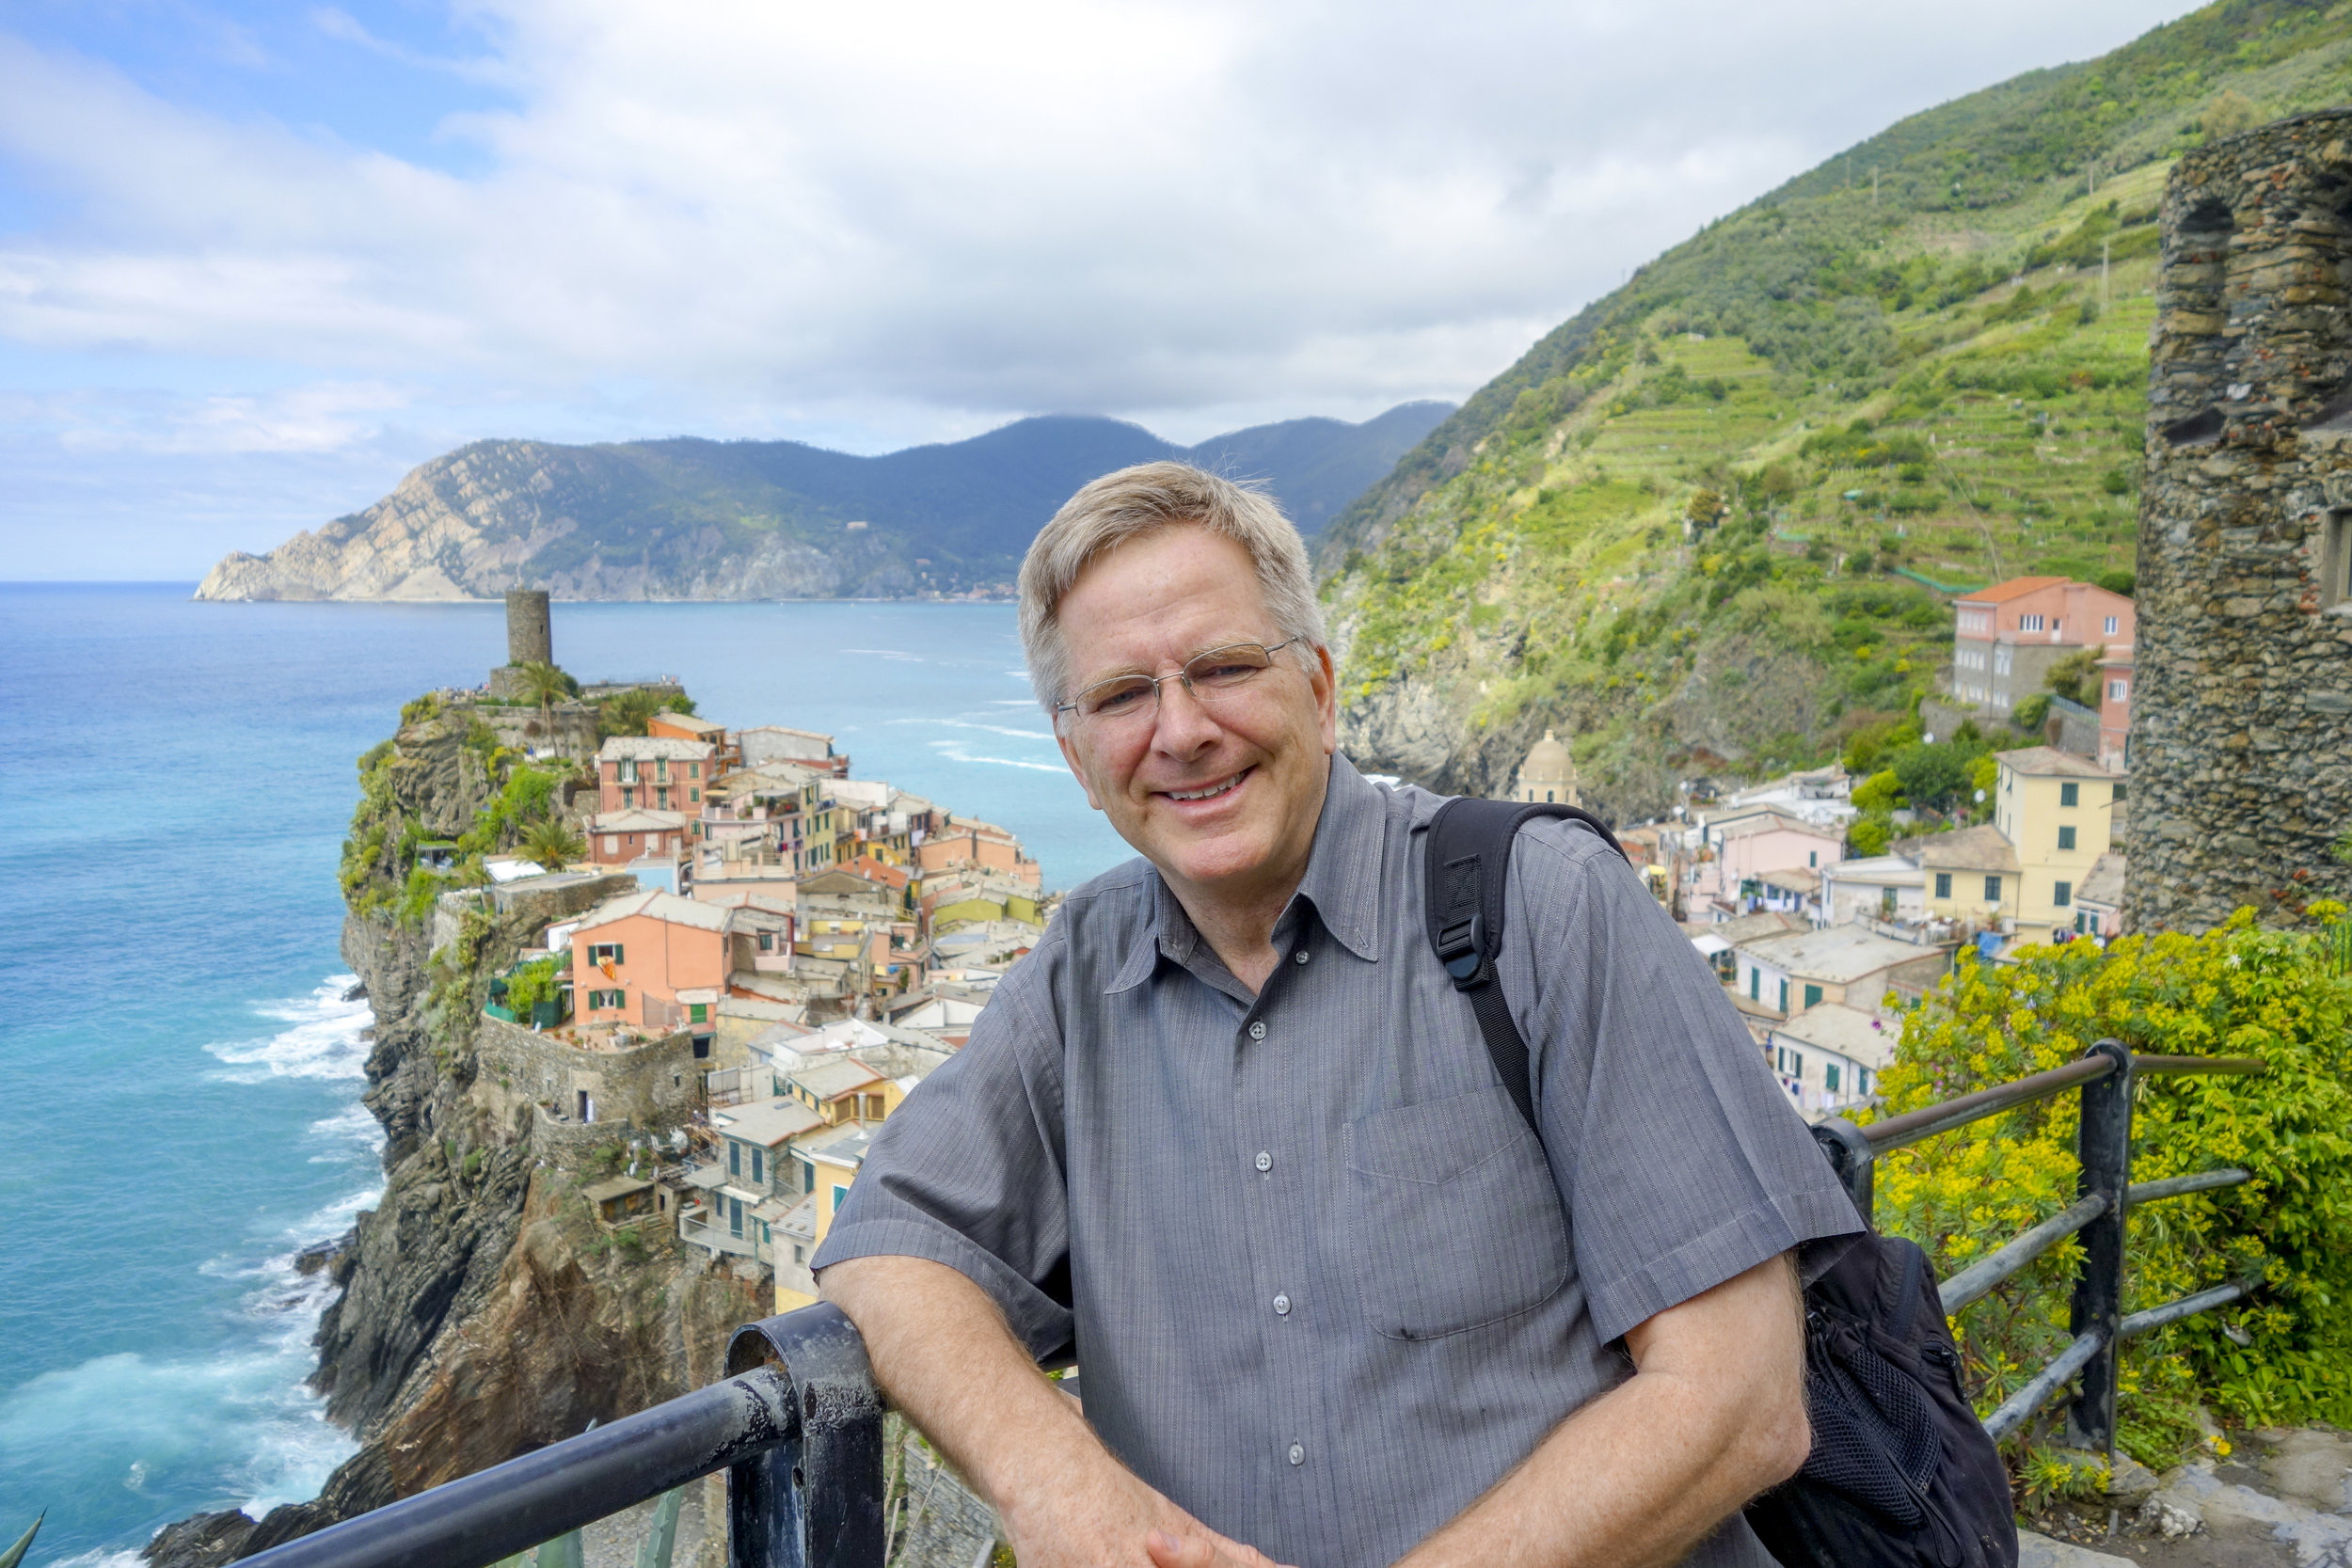 Rick Steves hosts  Rick Steves' Europe  on PBS and publishes a variety other content (click to enlarge) (Photo: RickSteves.com)